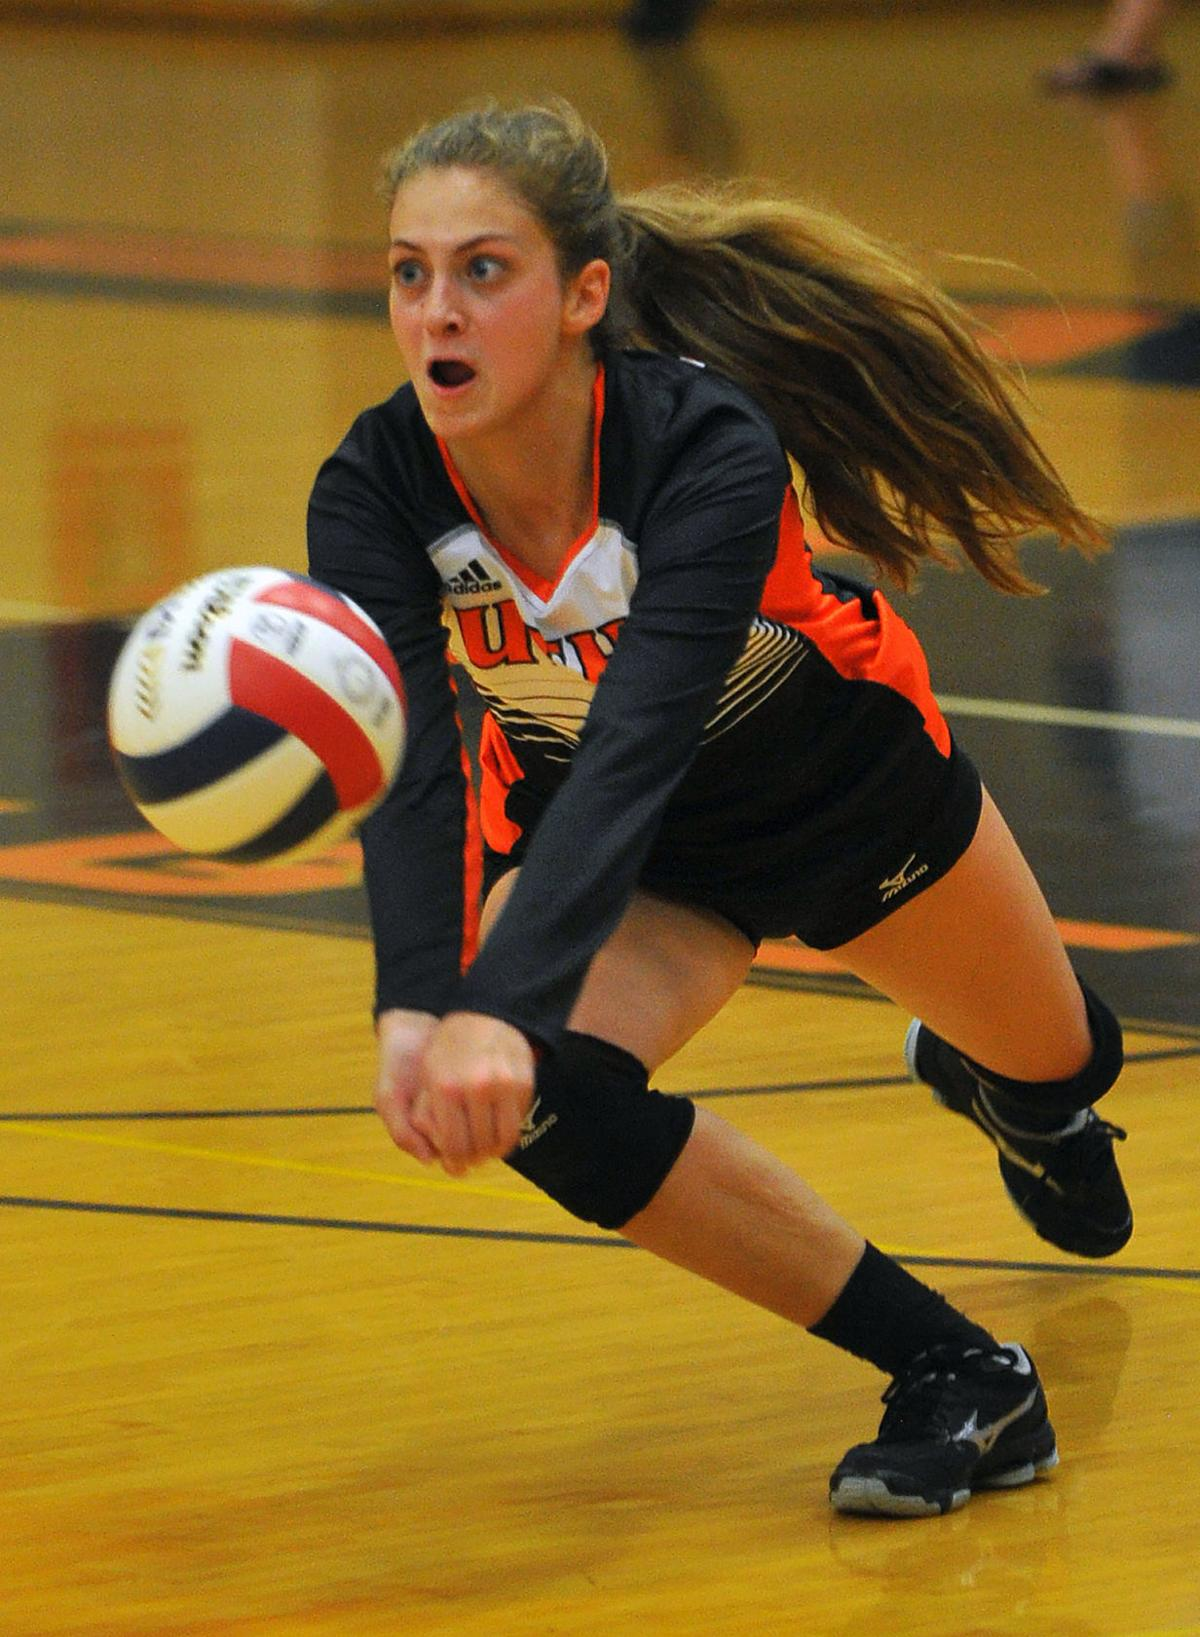 Rock Island at United Township volleyball.